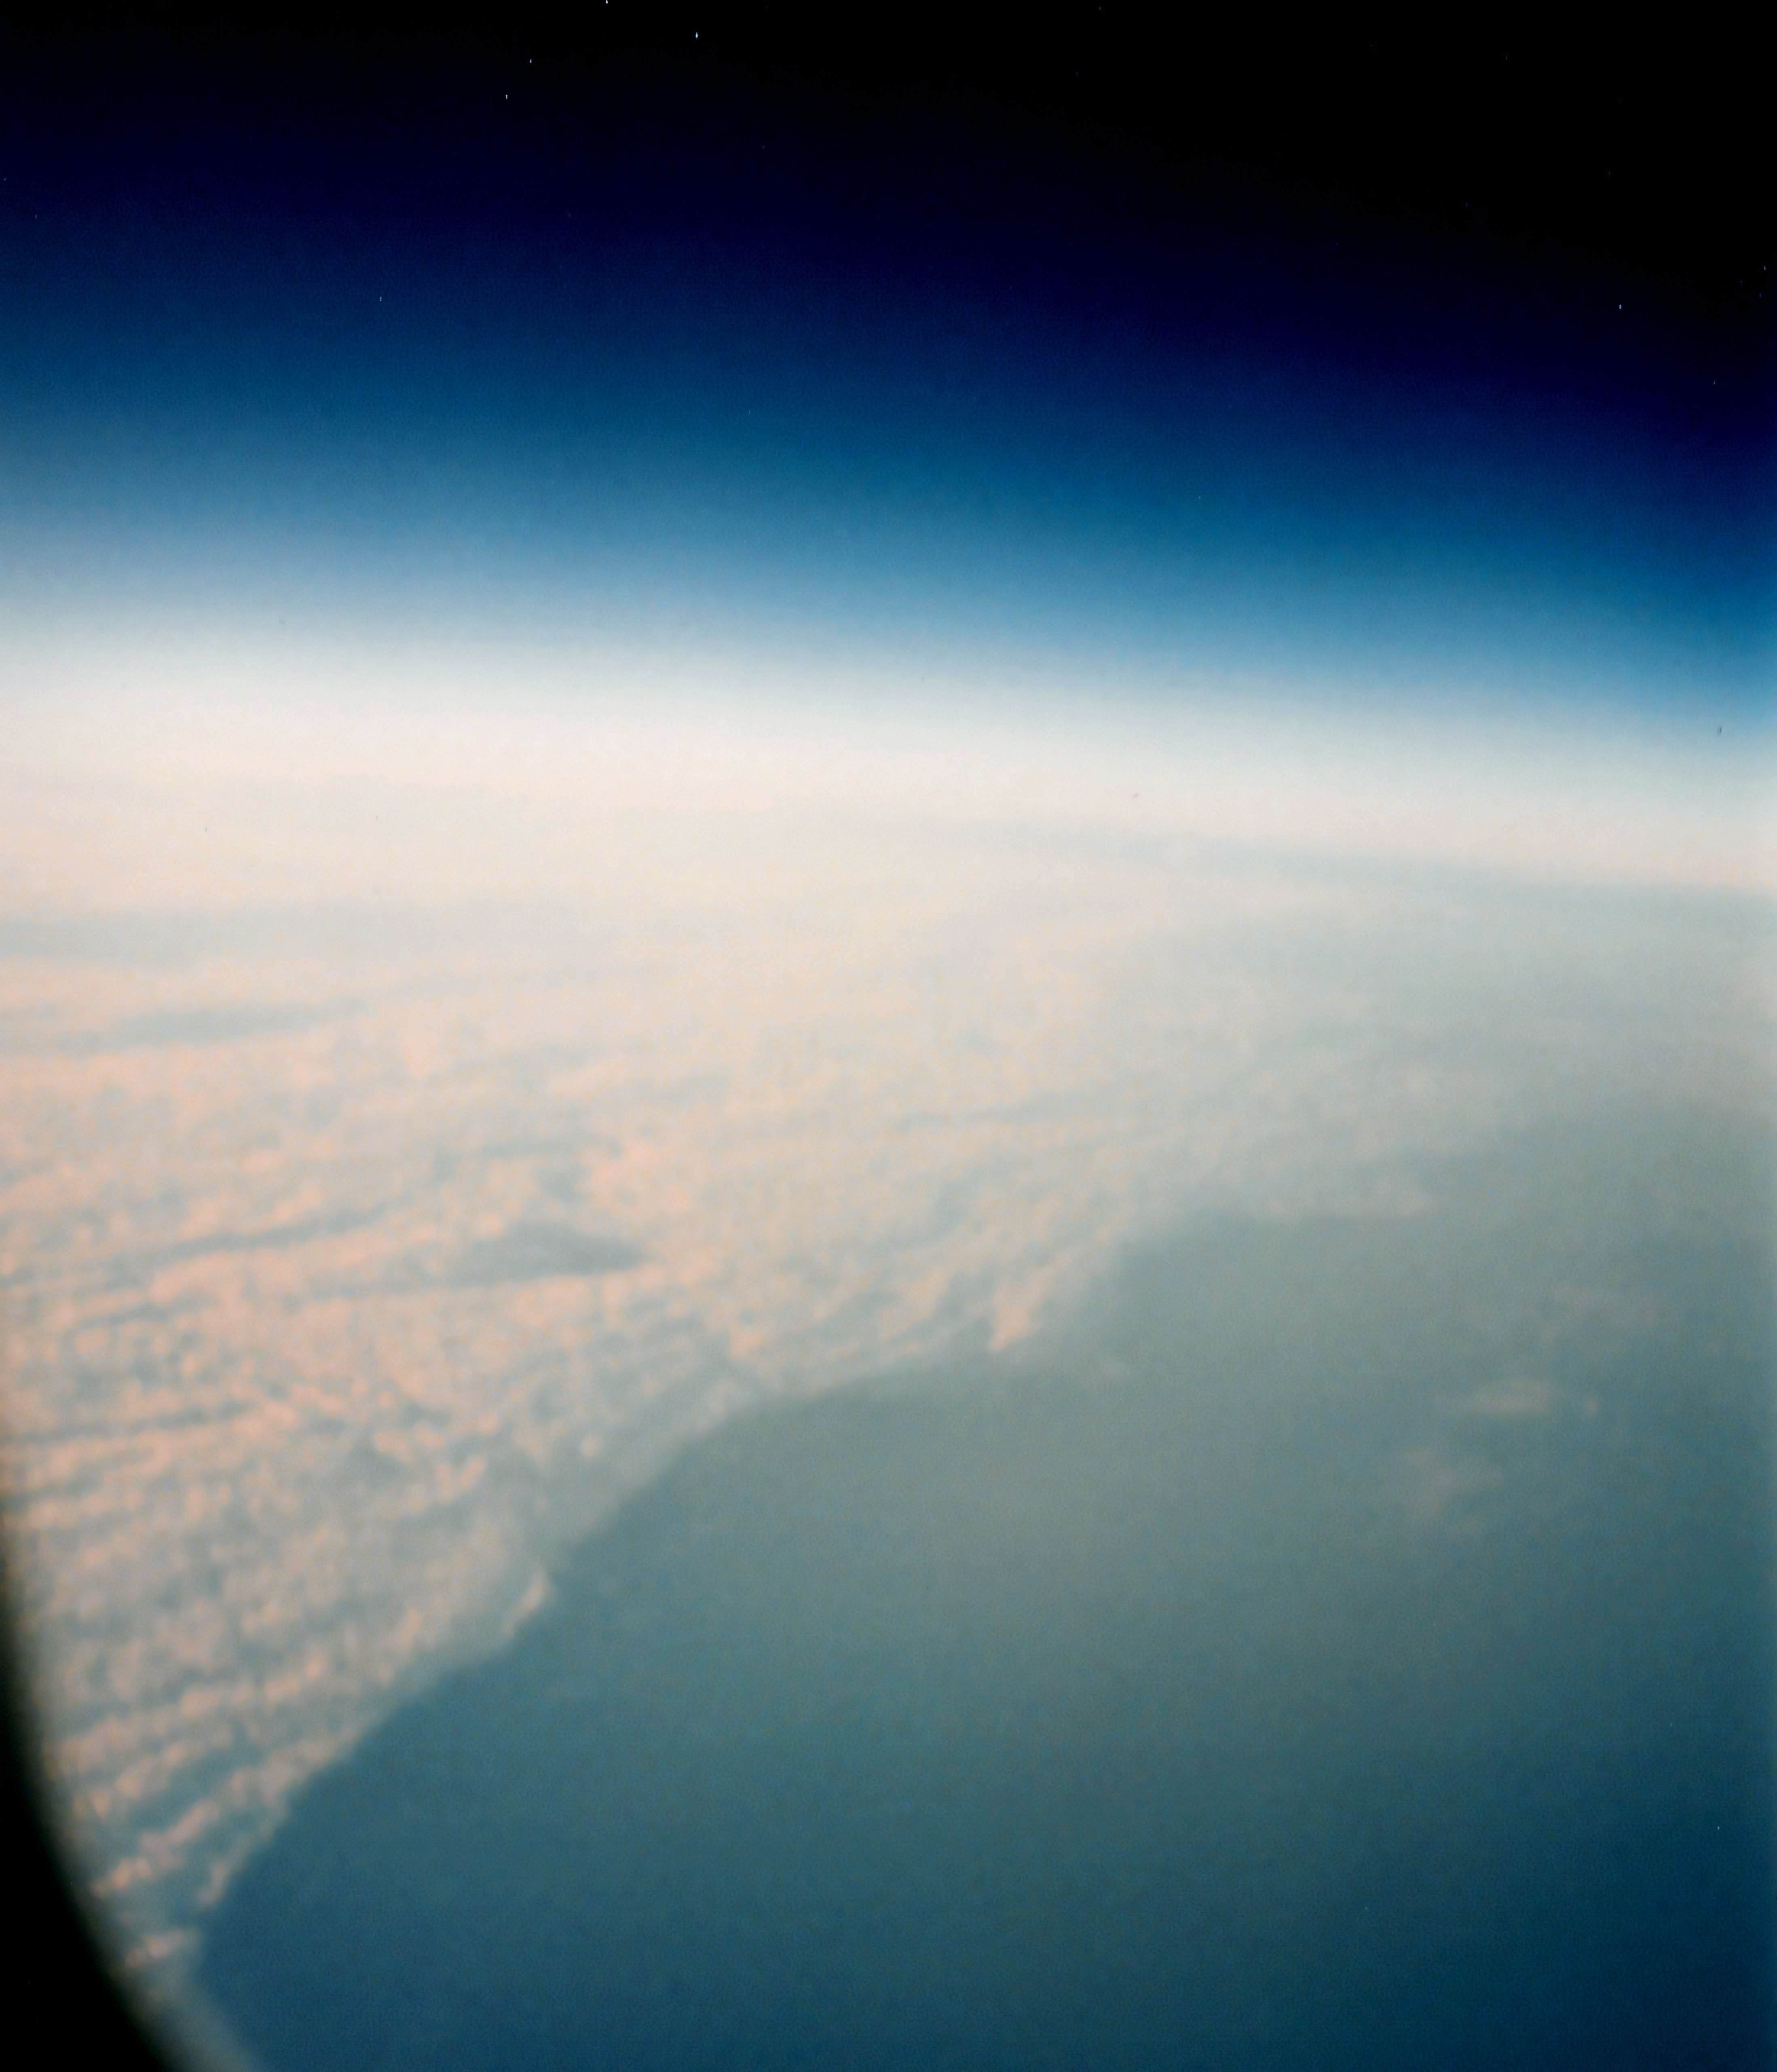 Can you see the Earth curvature from the Concorde? - Quora